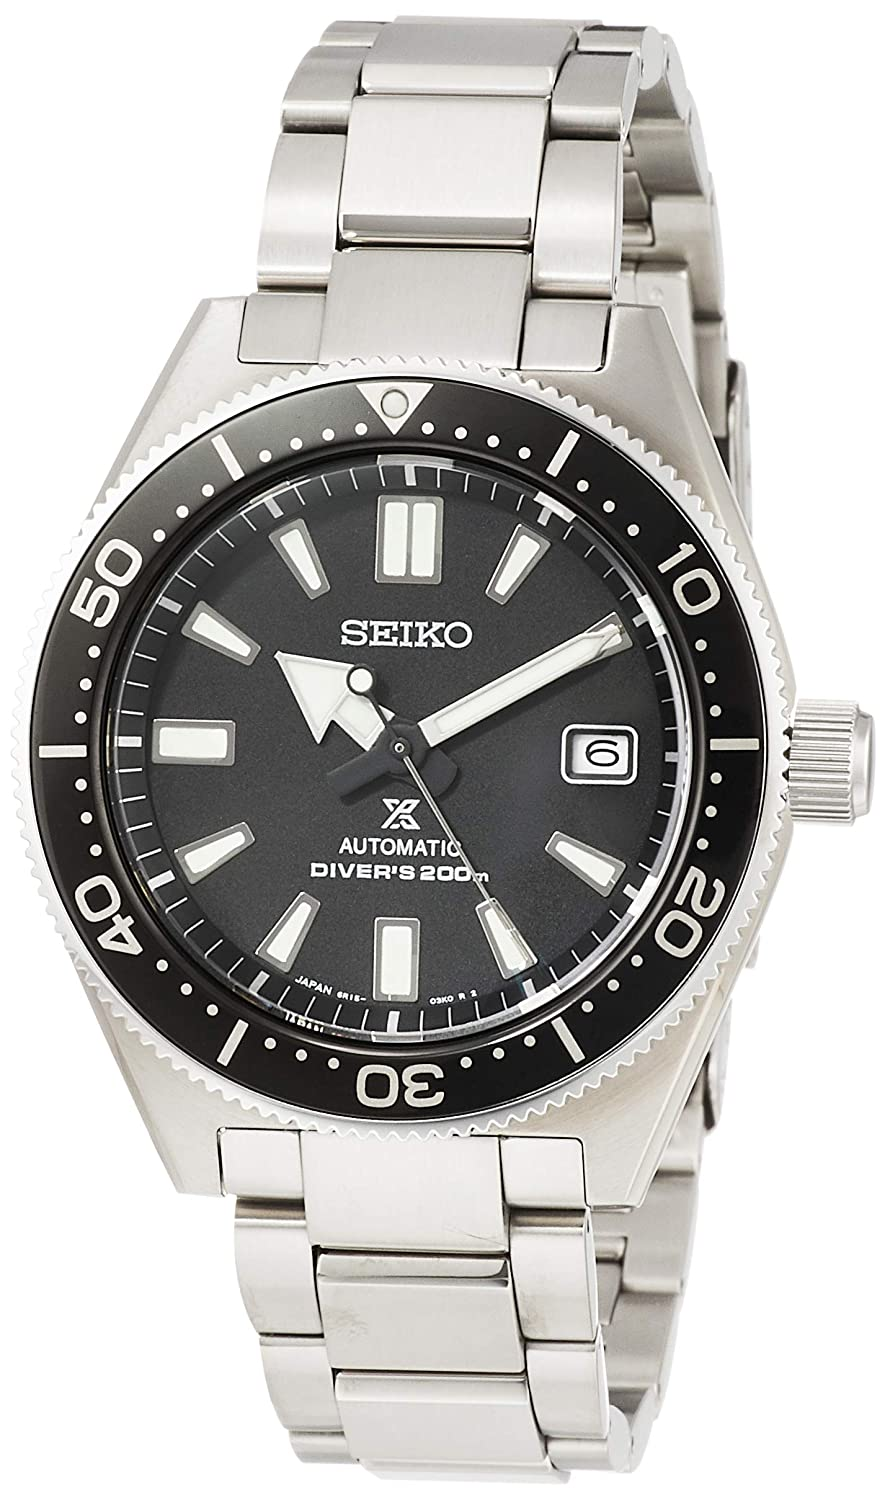 Seiko Prospex Sea, Watches For Men Under $1000, Water-resistant Watch, Automatic Watch